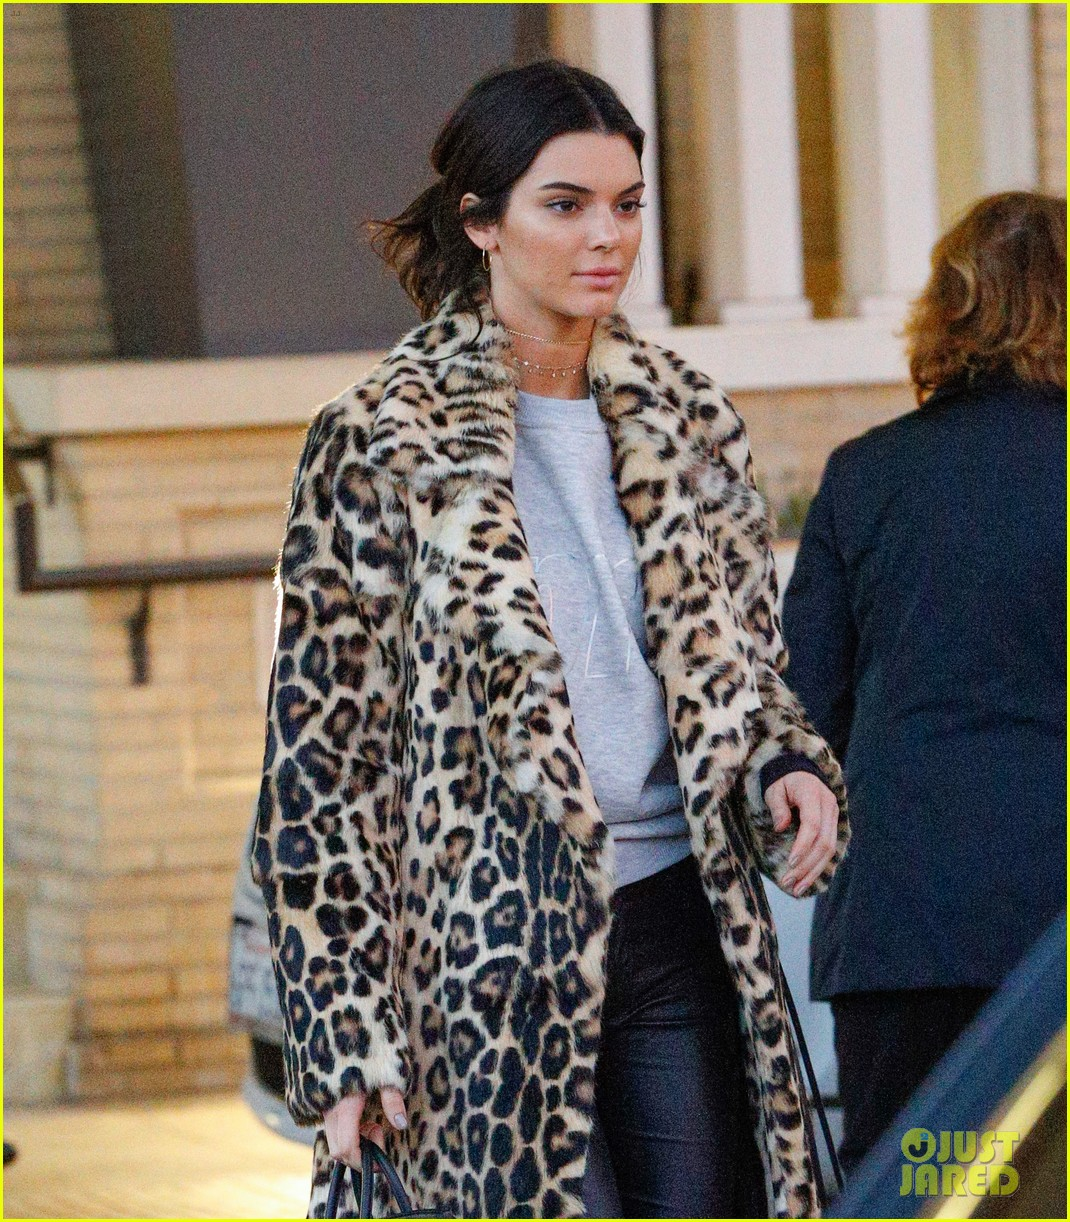 Kendall Jenner Has Some Holiday Gift Ideas for Christmas 2016 ...